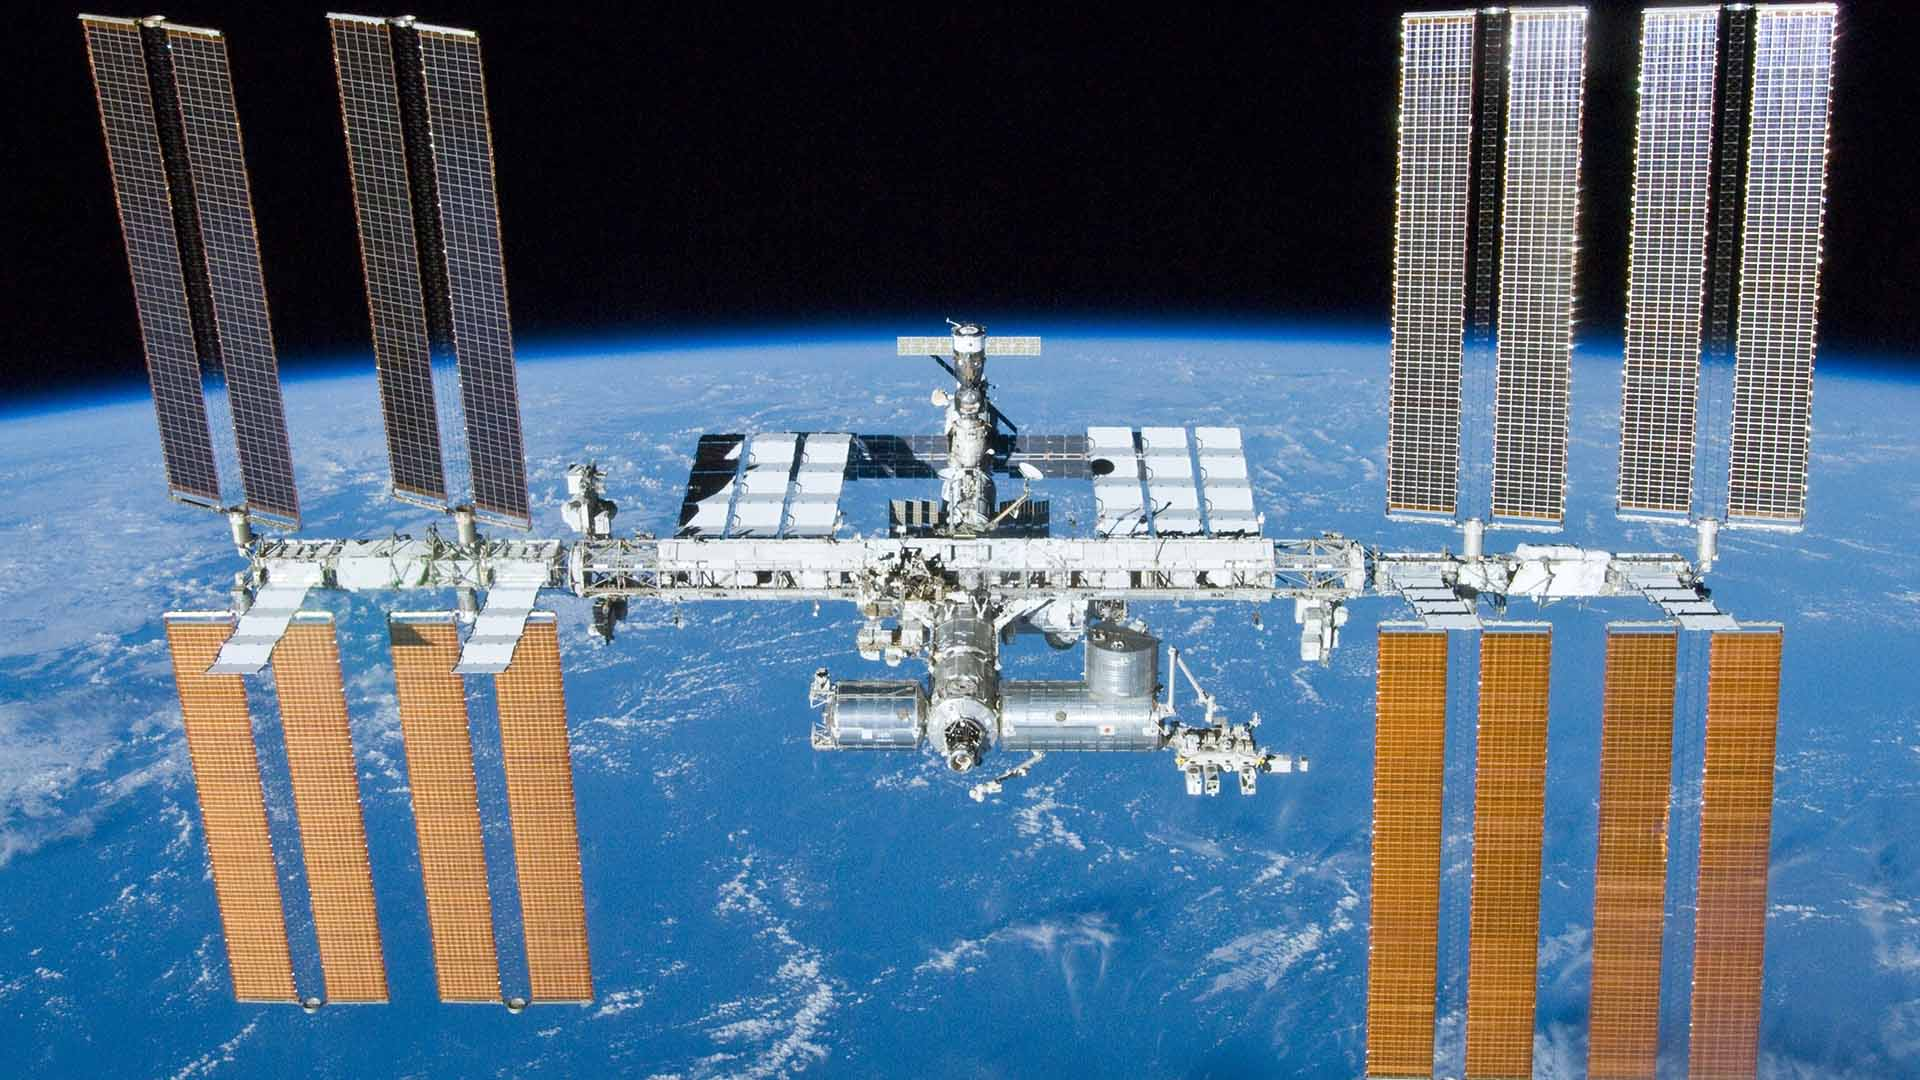 You'll Soon Be Able to Take a (Very Expensive) Holiday to the International Space Station